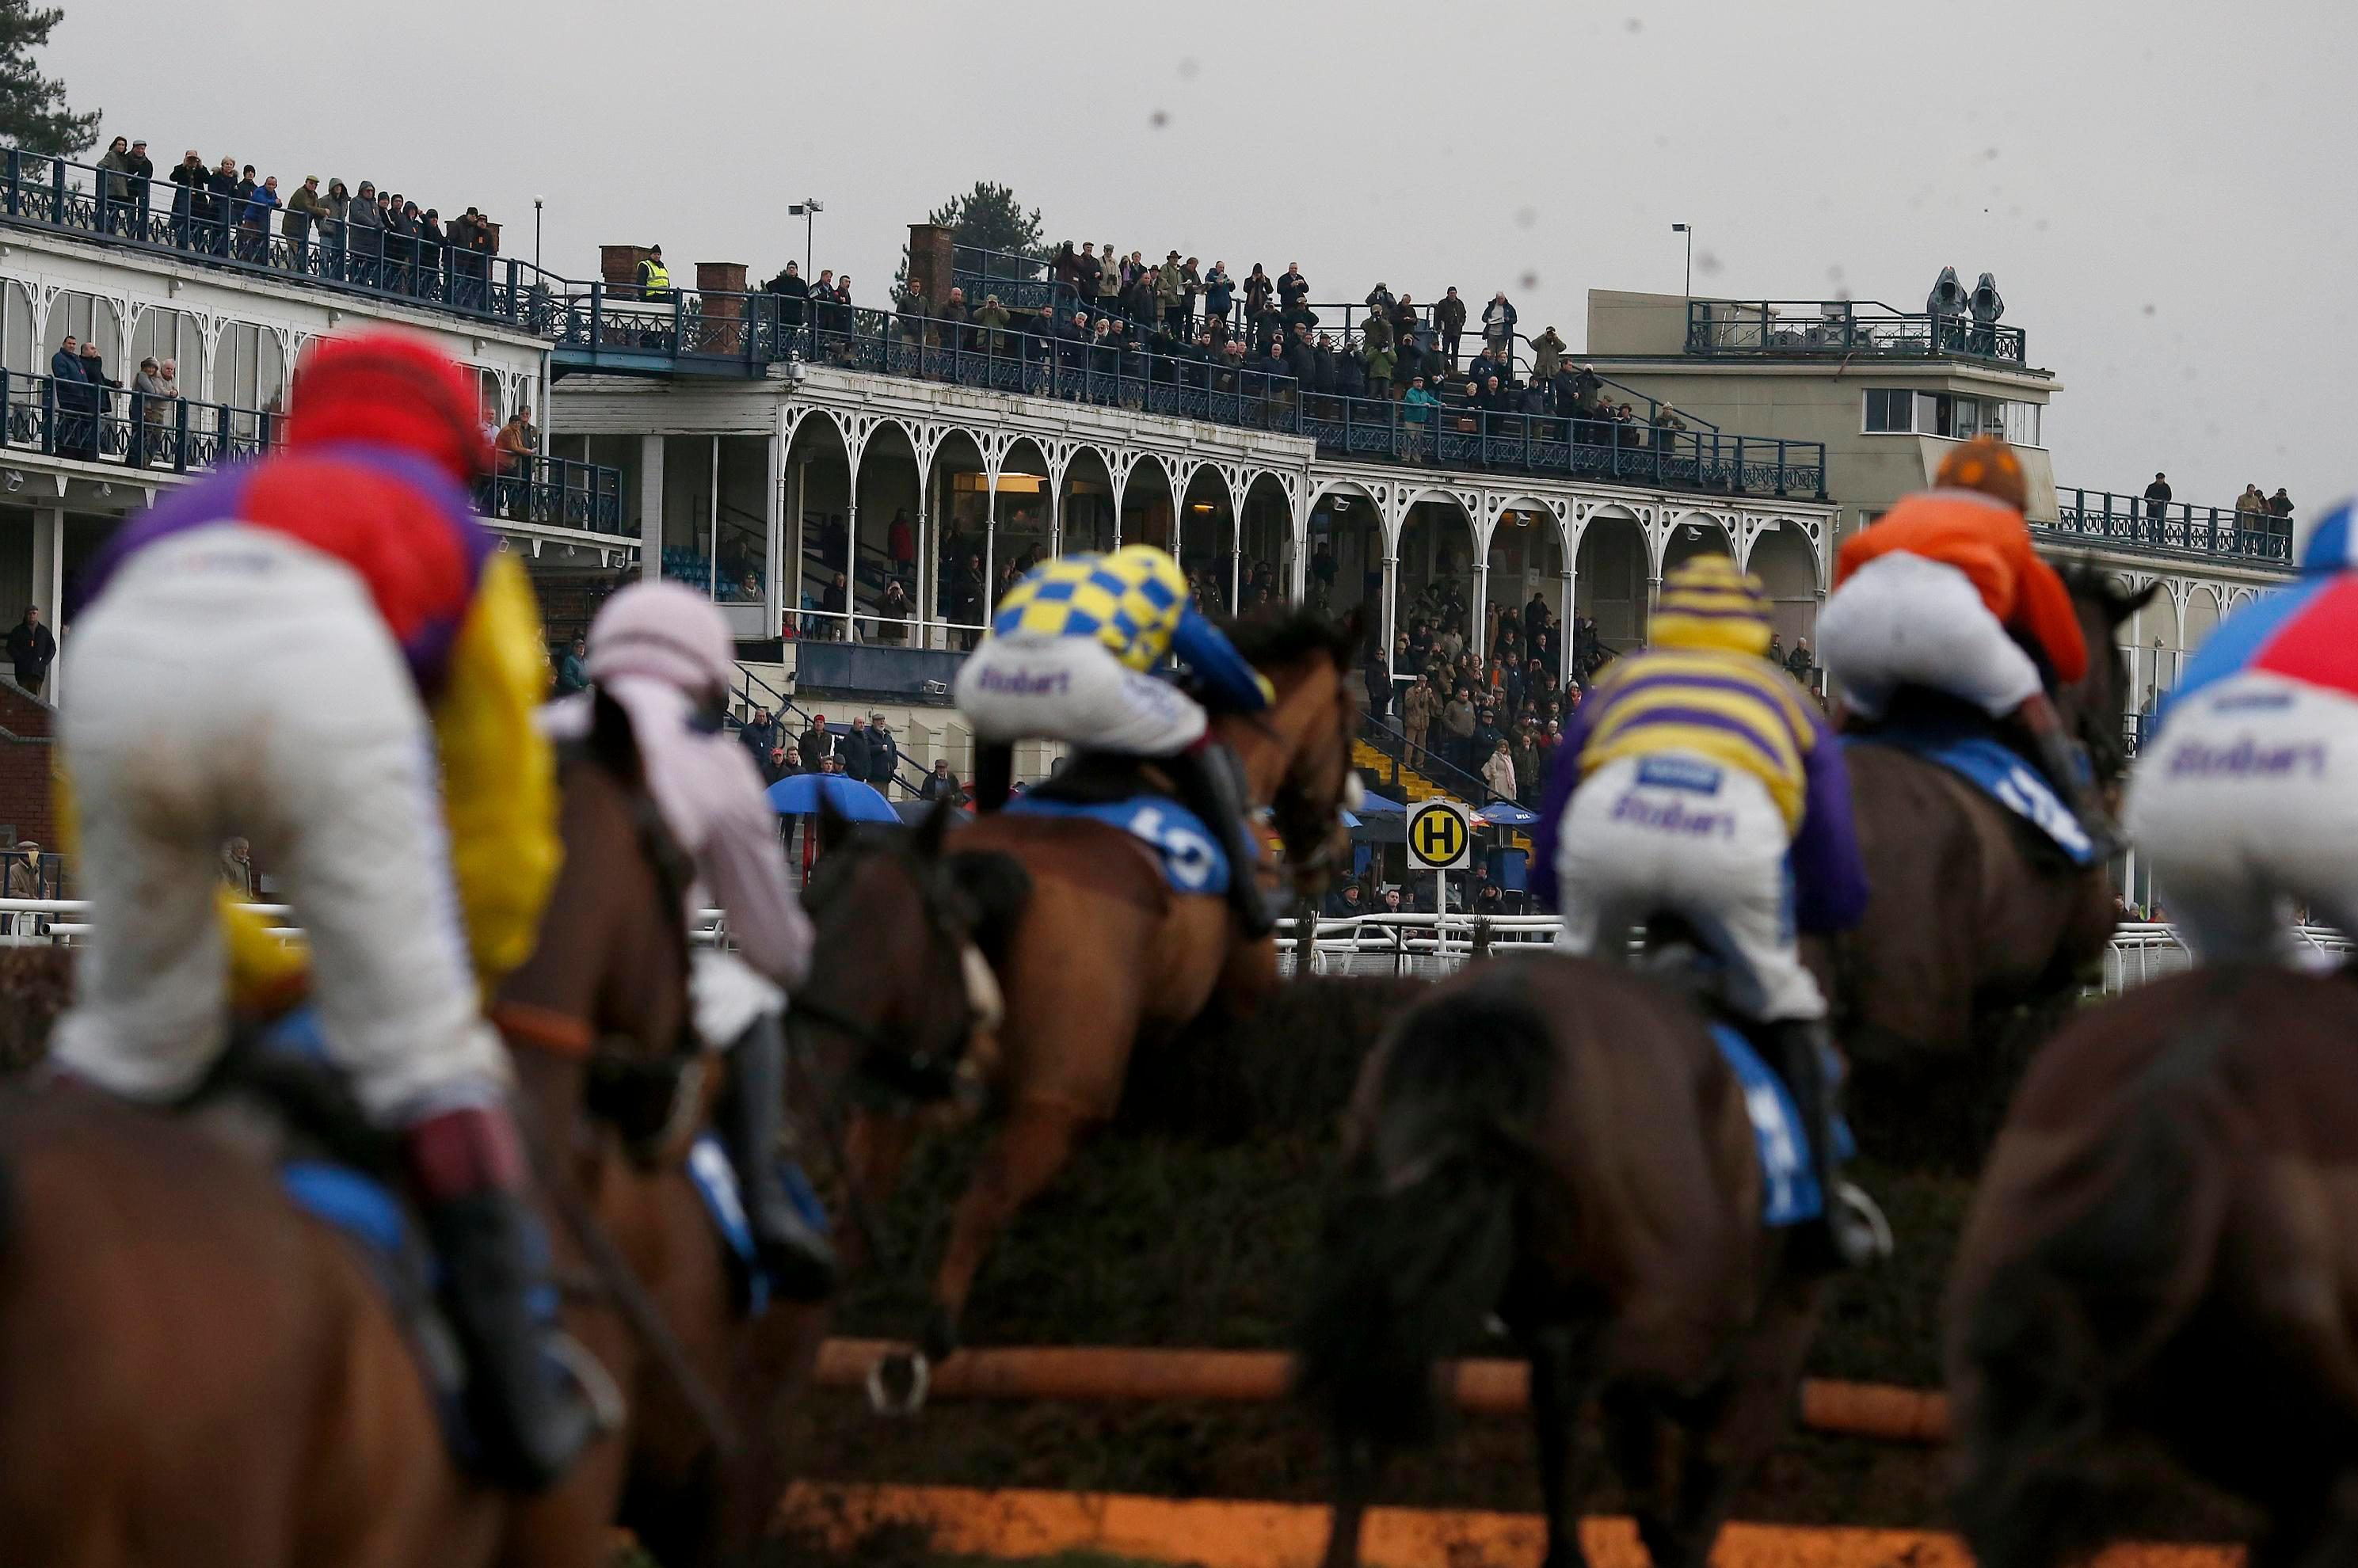 Horse racing tips: Ludlow, Chepstow, Chelmsford and Wolverhampton – Steve Mullen's betting preview for the racing this Thursday, March 22